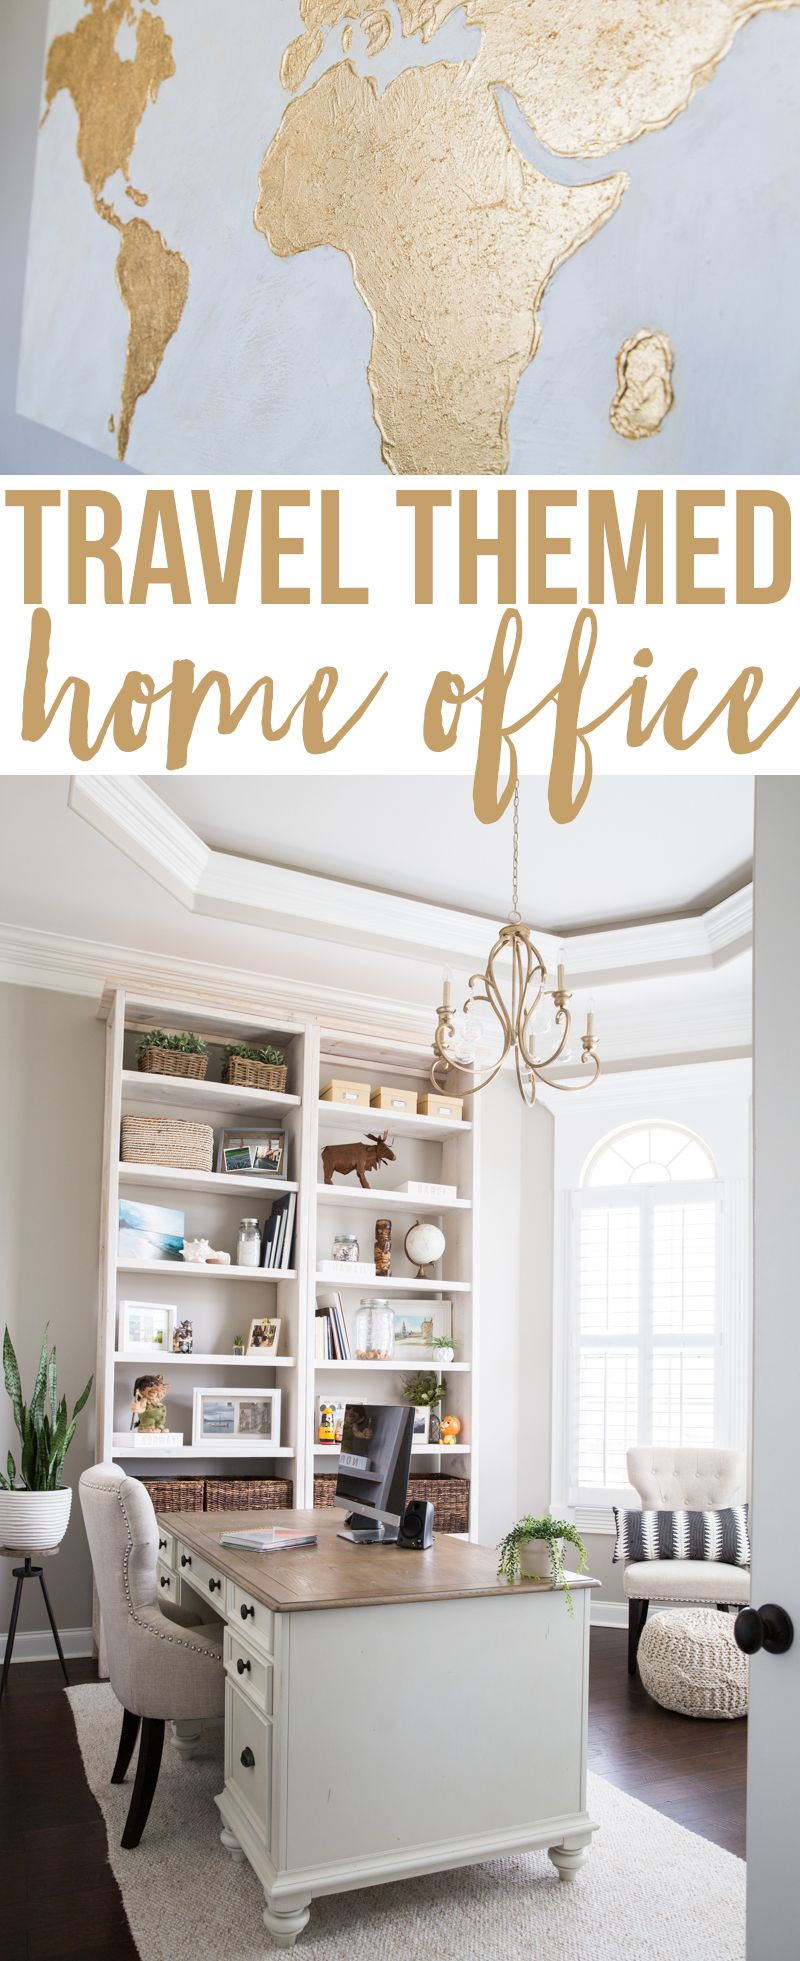 making a home office. Get Inspiration For A Travel Themed Home Office Including How To Display Treasures From Your Travels And Other Ideas Making Vacation Memories The